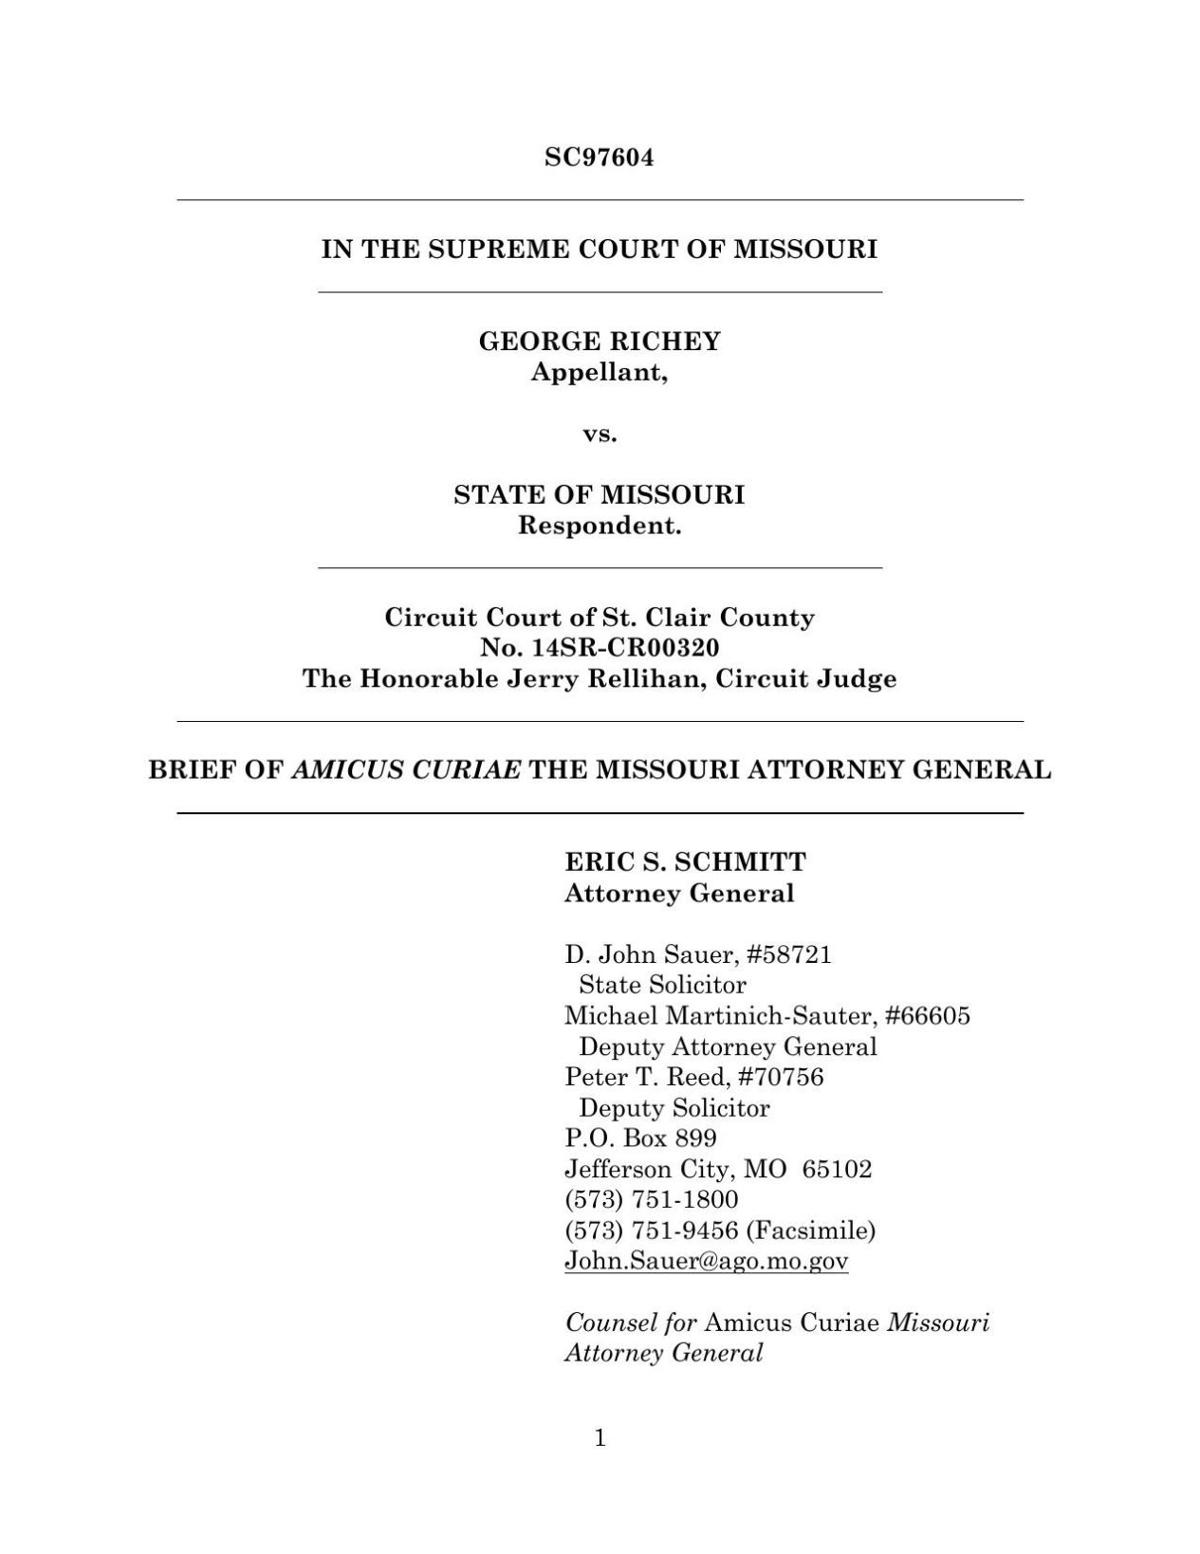 Amicus brief in George Richey case